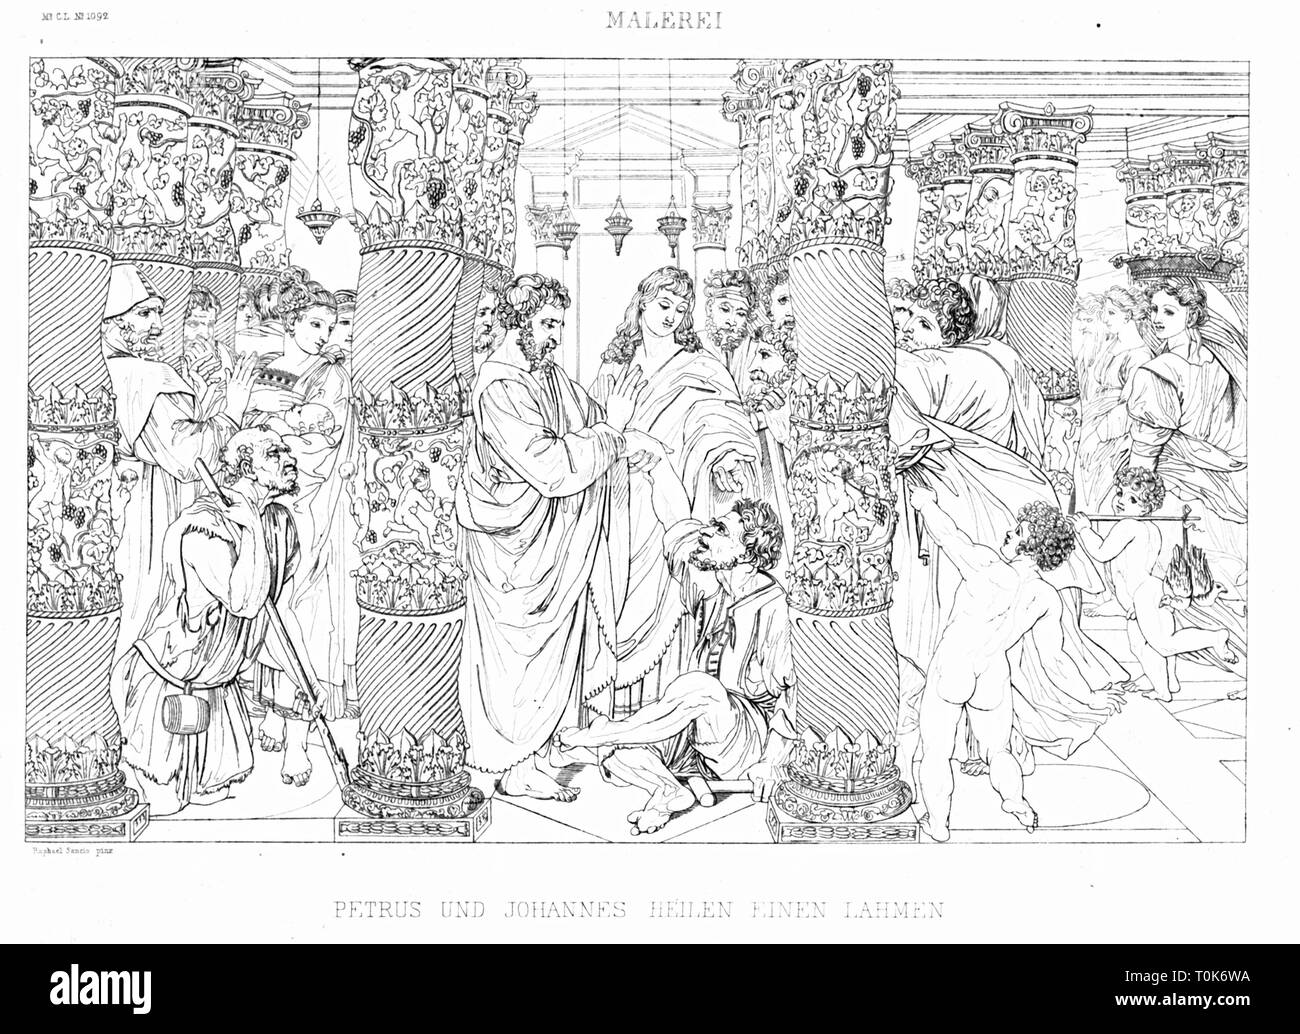 religion, biblical scenes, 'The Healing of the Lame Man', steel engraving, 19th century, after a painting by Raffaello Sanzio (Raphael), circa 1516, Additional-Rights-Clearance-Info-Not-Available - Stock Image